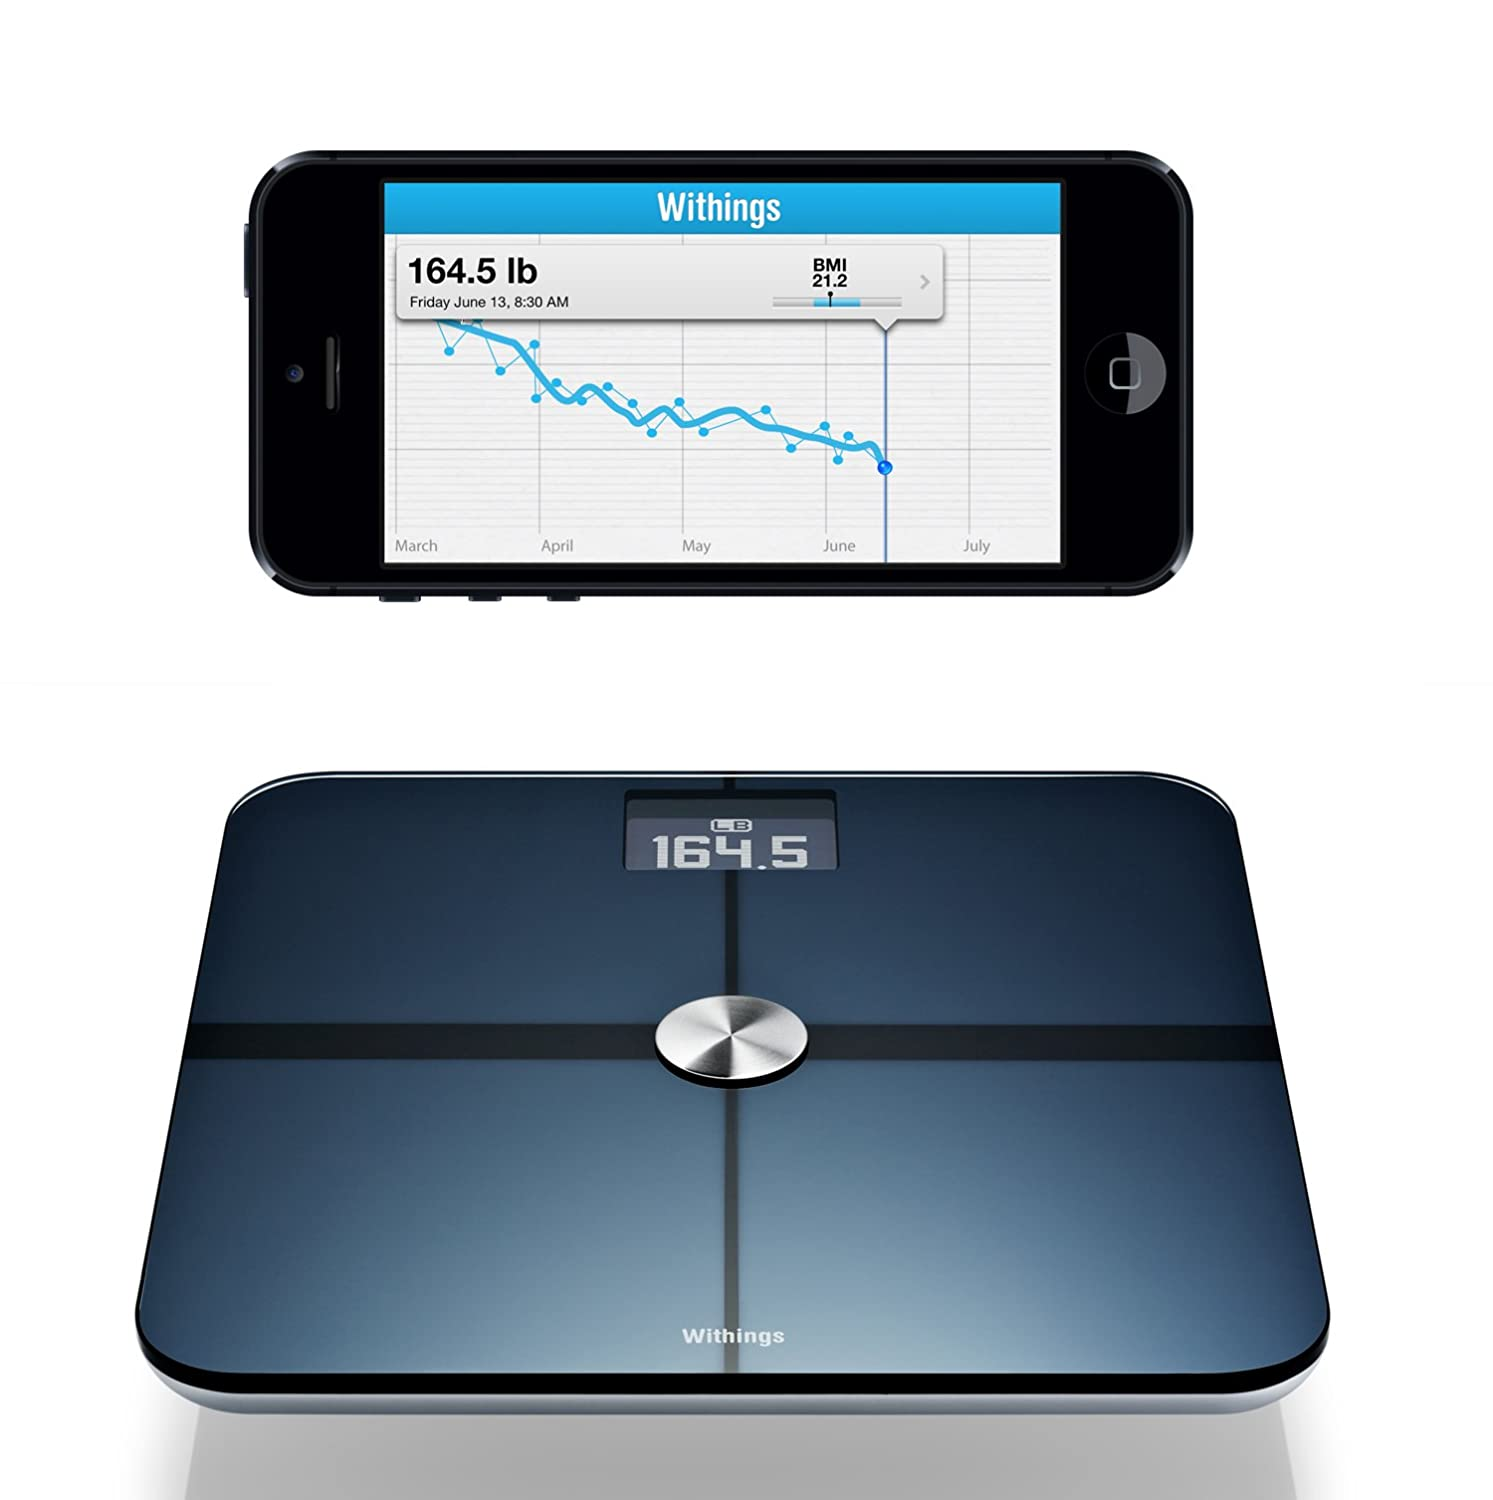 Withings - Wifi Bodyscale